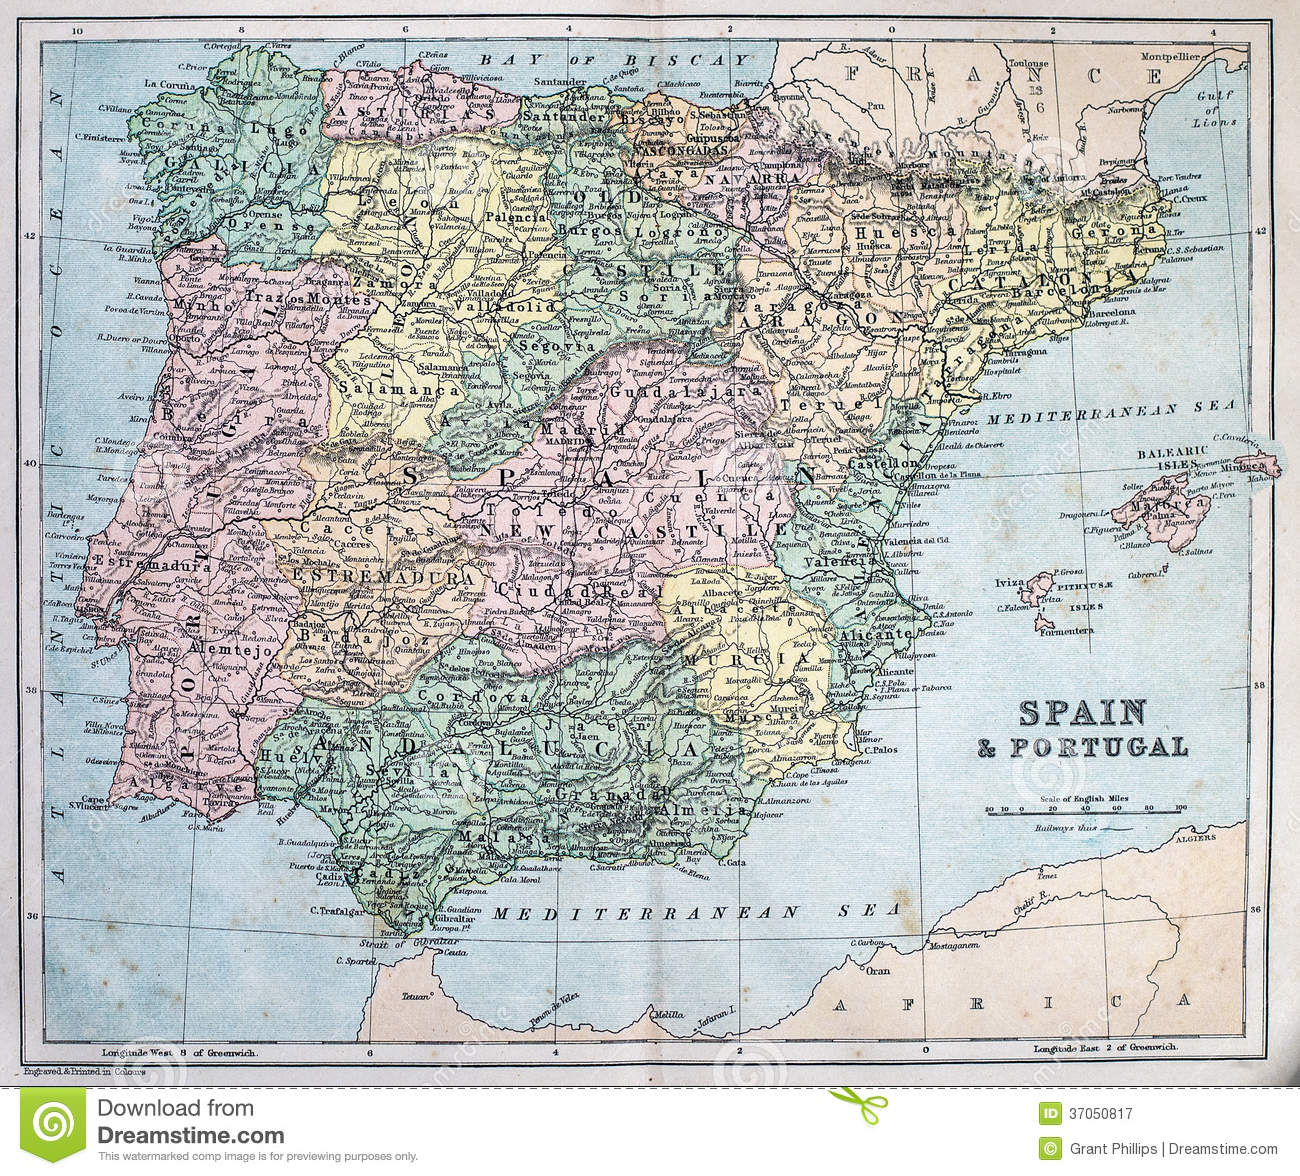 Map Of Spain Geography.Antique Map Of Spain And Portugal Stock Image Image Of Geography